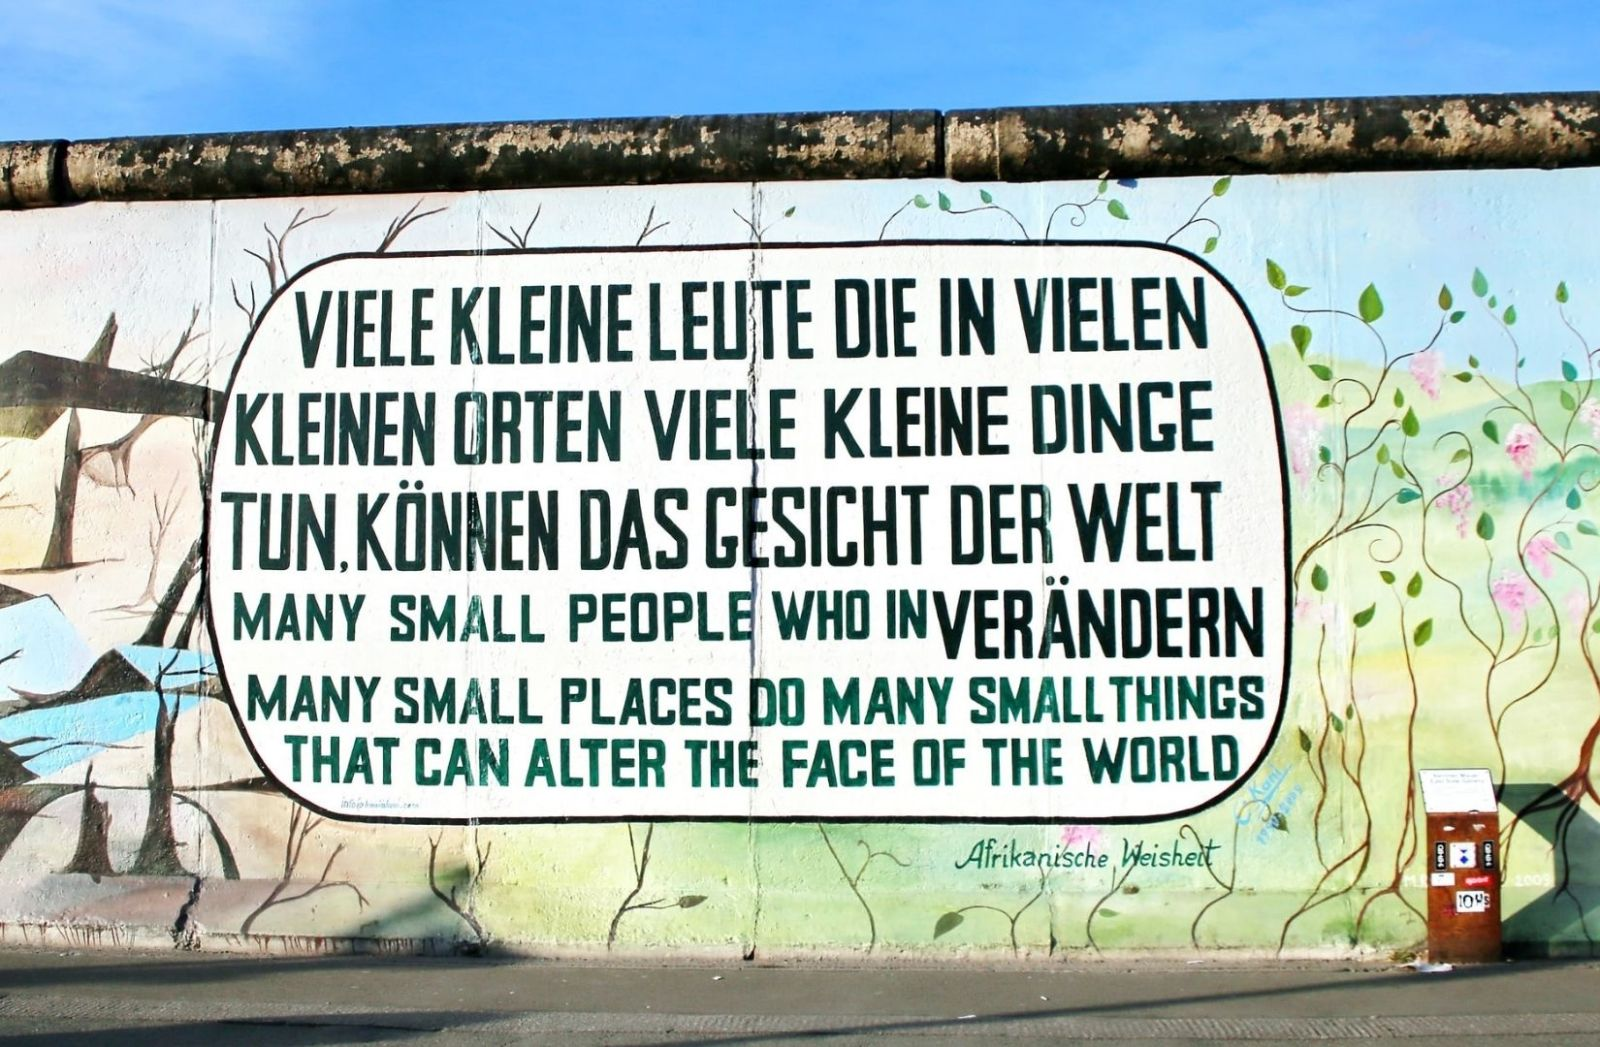 Street Art in Berlin. East Side Gallery. (Foto: Mark König, Unsplash.com)